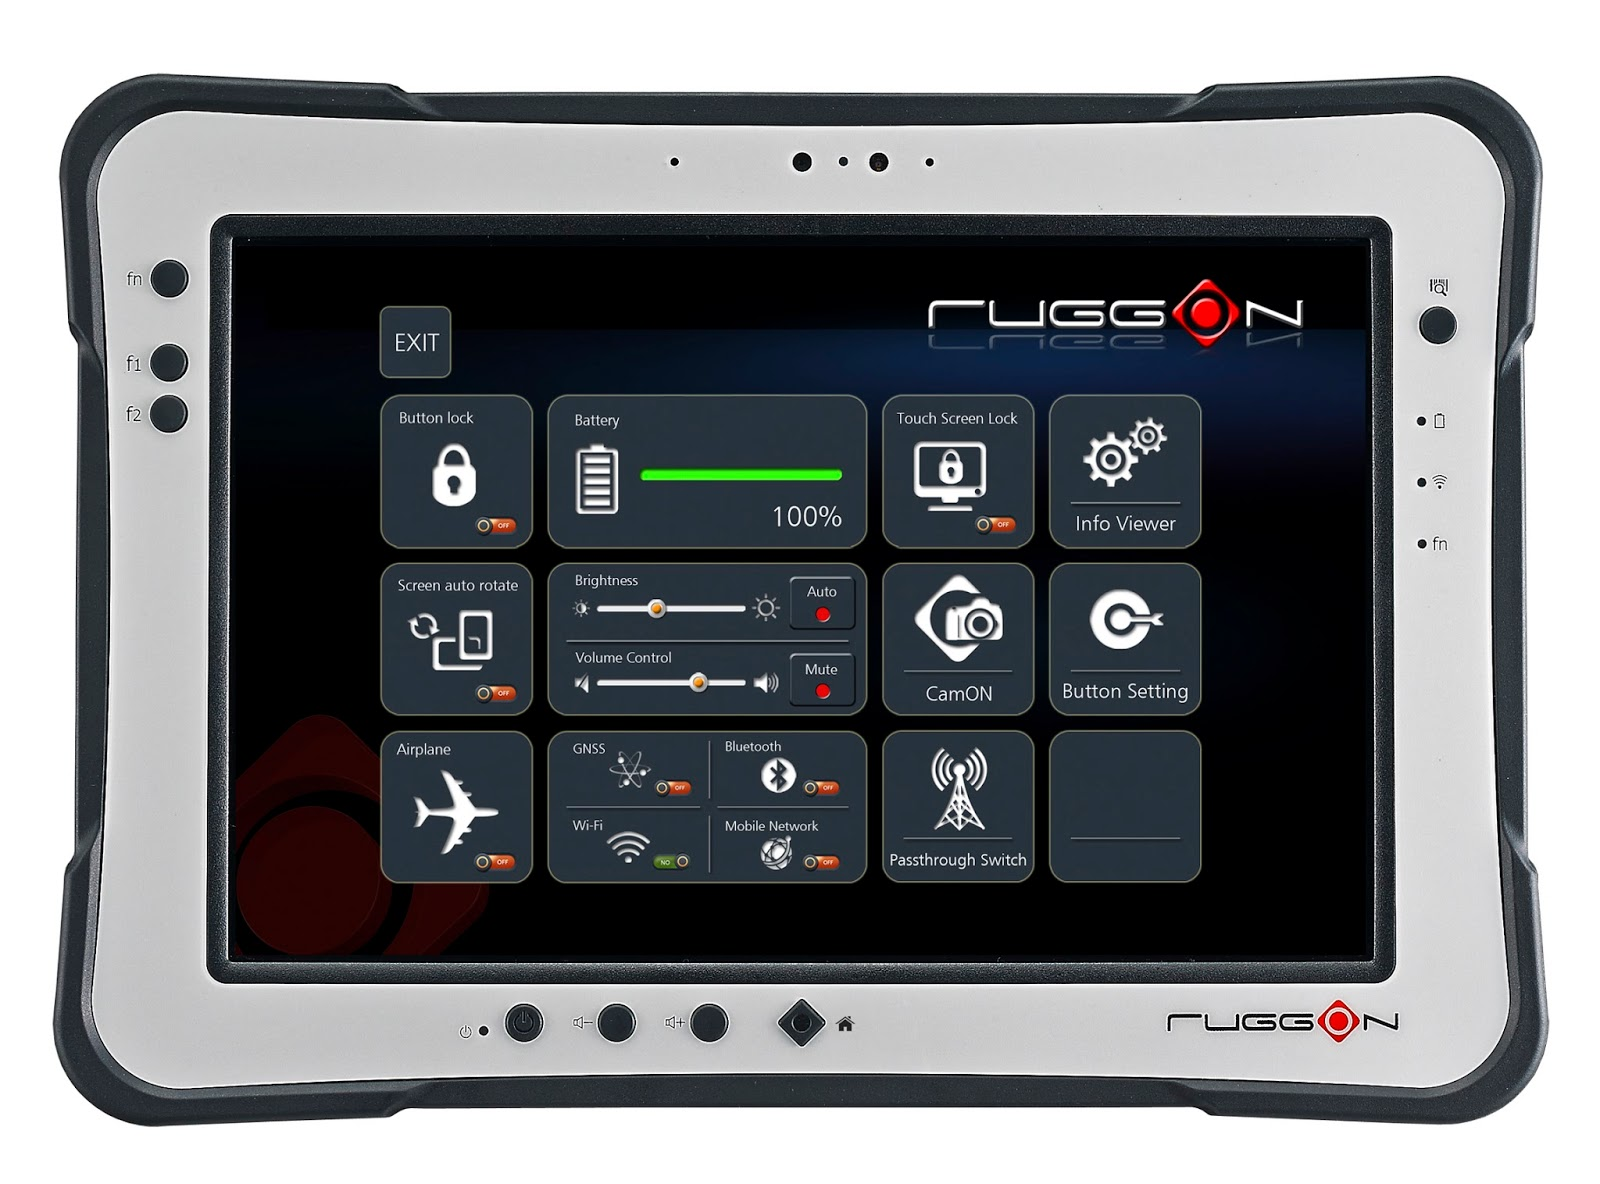 Ruggon Rugged Tablets Now Available At Group Mobile!  A. Epipen Use Instructions Aspen School Software. Jeep Dealership Chicago Il Storm Tite Windows. Basel Iii Liquidity Coverage Ratio. Northern Colorado University. Retirement Homes Pittsburgh Carbon Roof Wrap. Pasco County Supervisor Of Elections. How To Get Personal Trainer Certification. Getty Images Coupon Codes Home Loan Mortgages